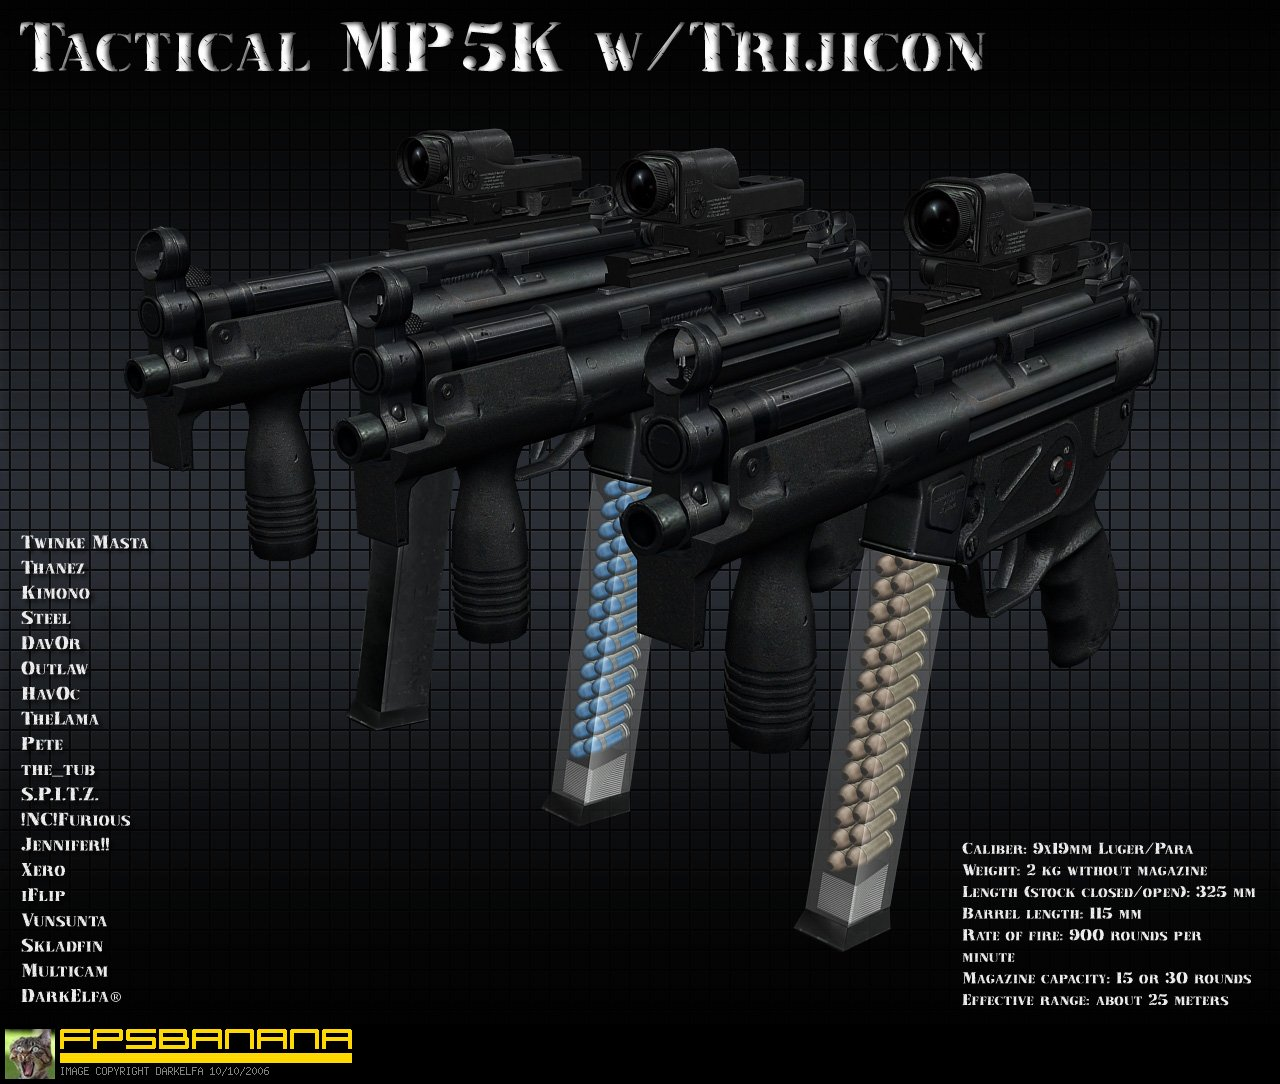 Tactical MP5K